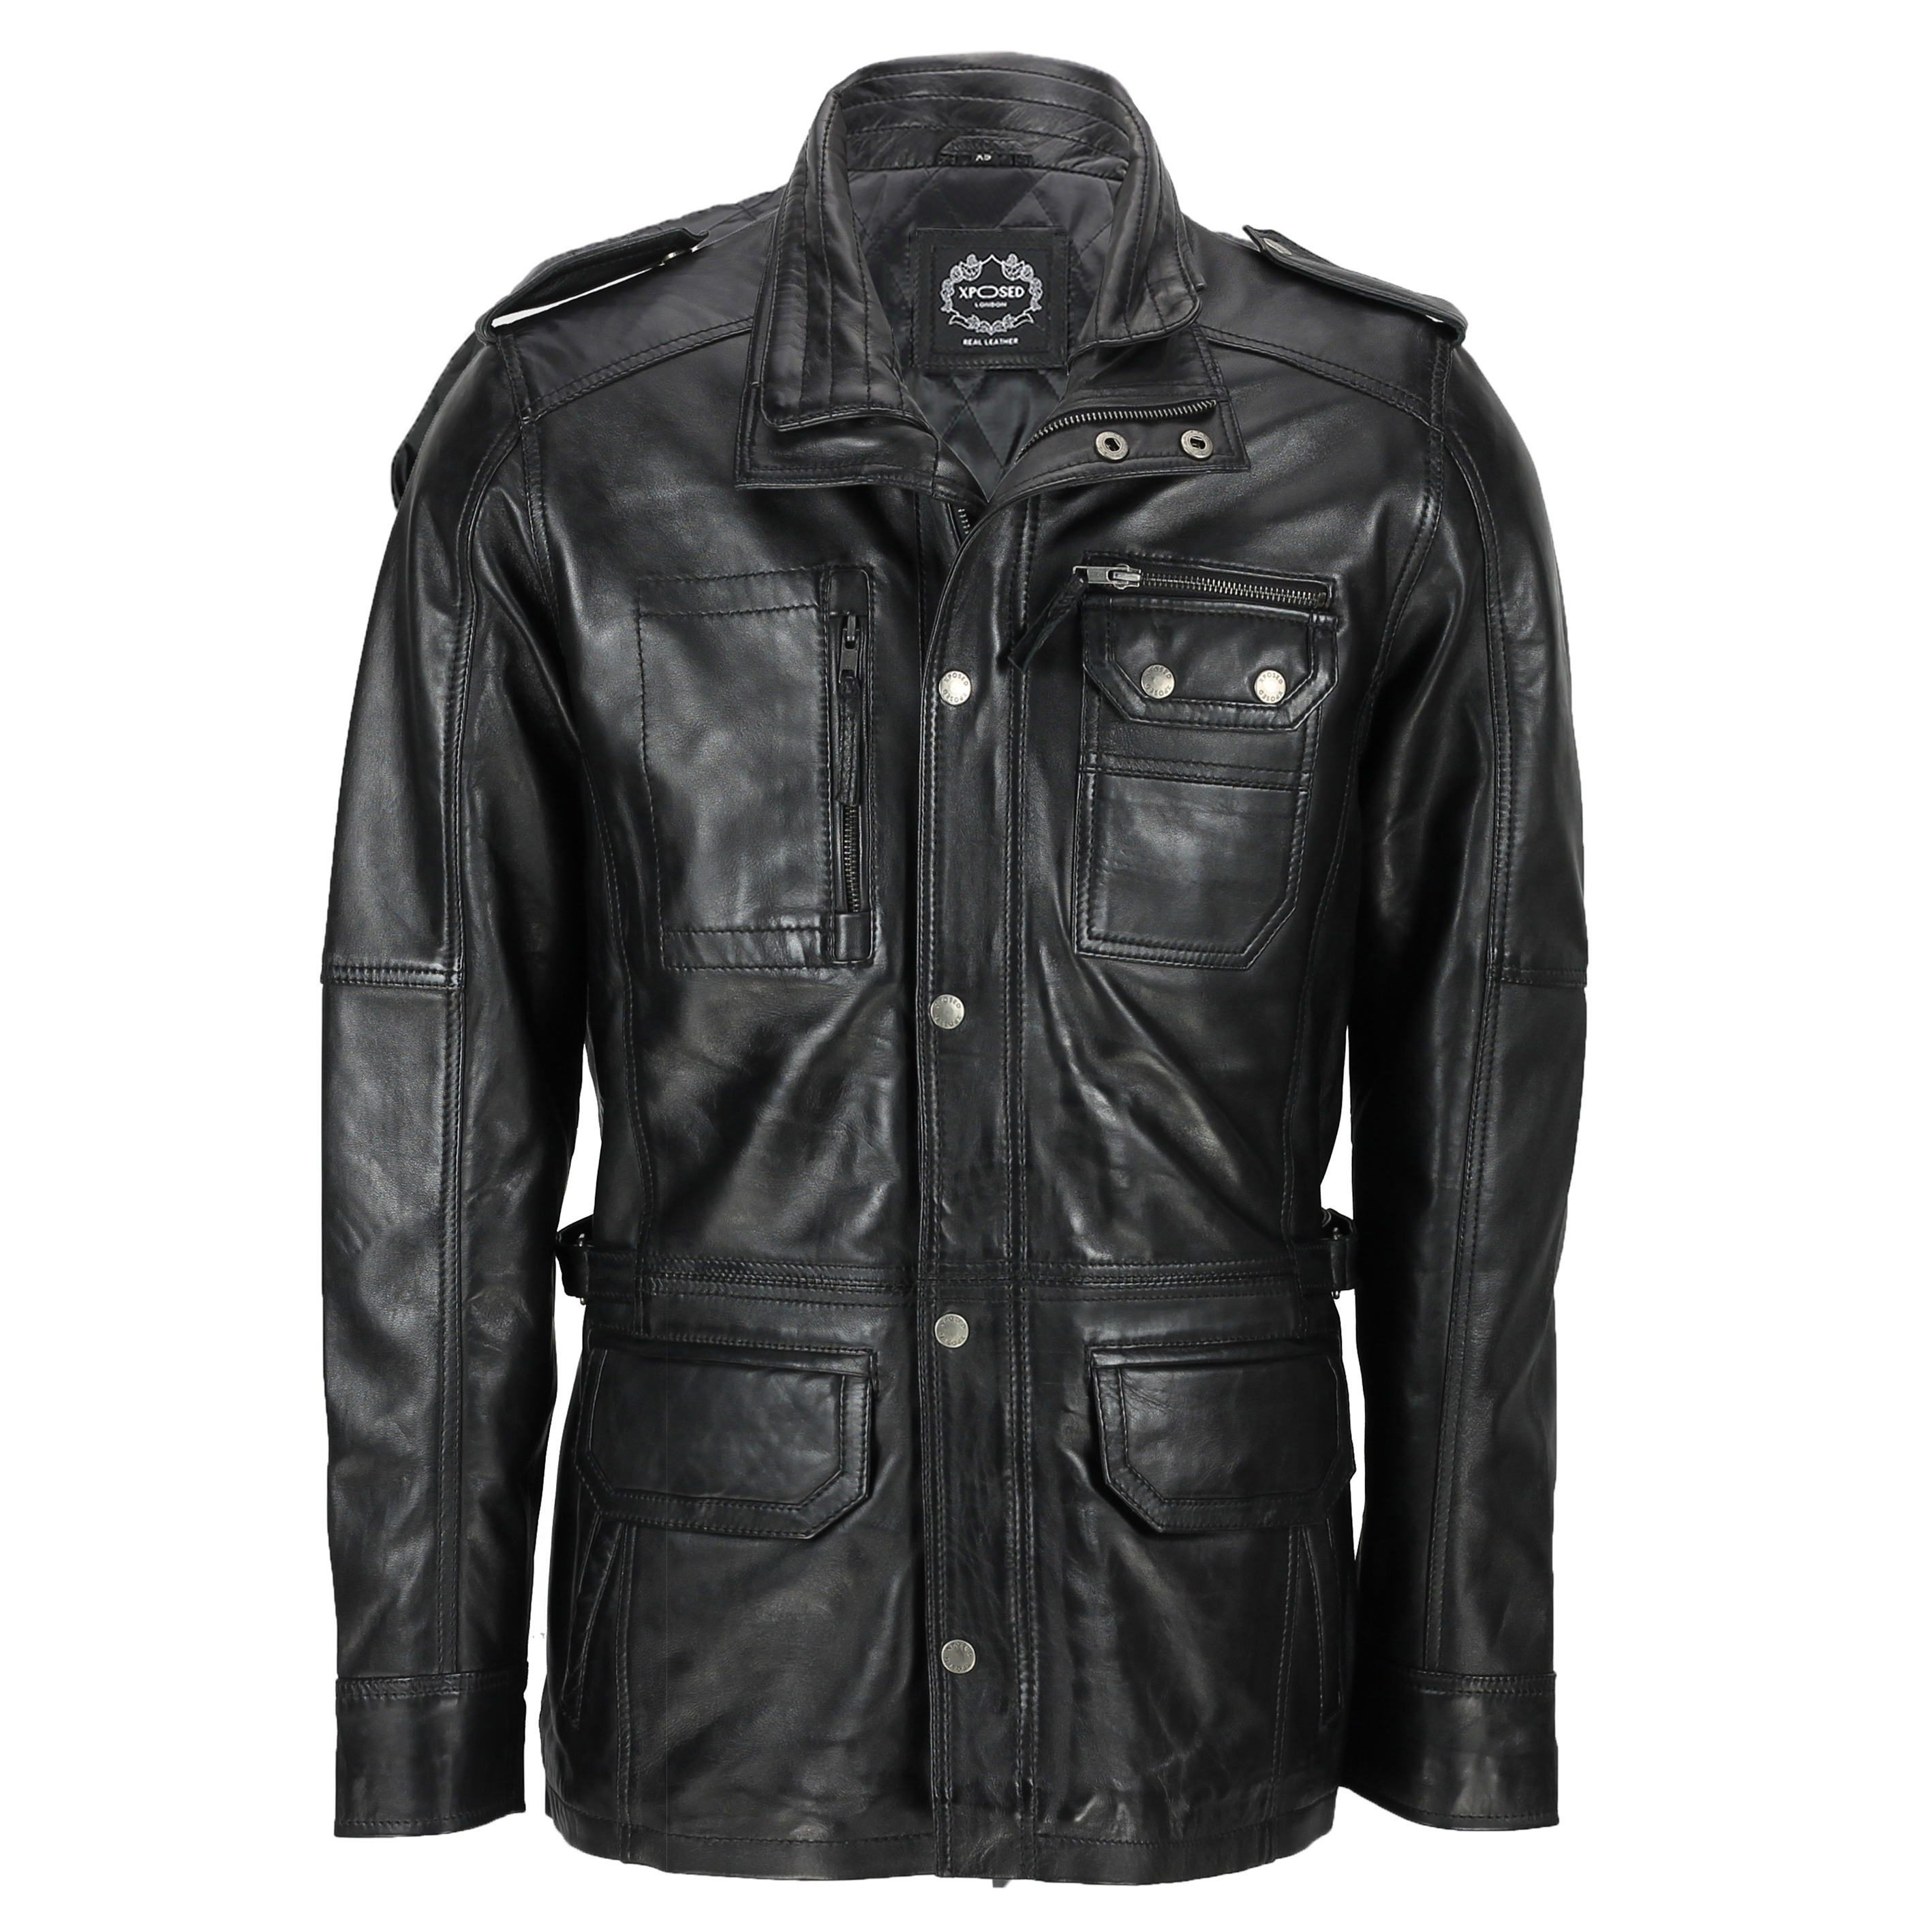 newest collection many choices of suitable for men/women Details about New Mens Classic Black Soft Wax Real Leather Smart Vintage  Jacket Military Coat